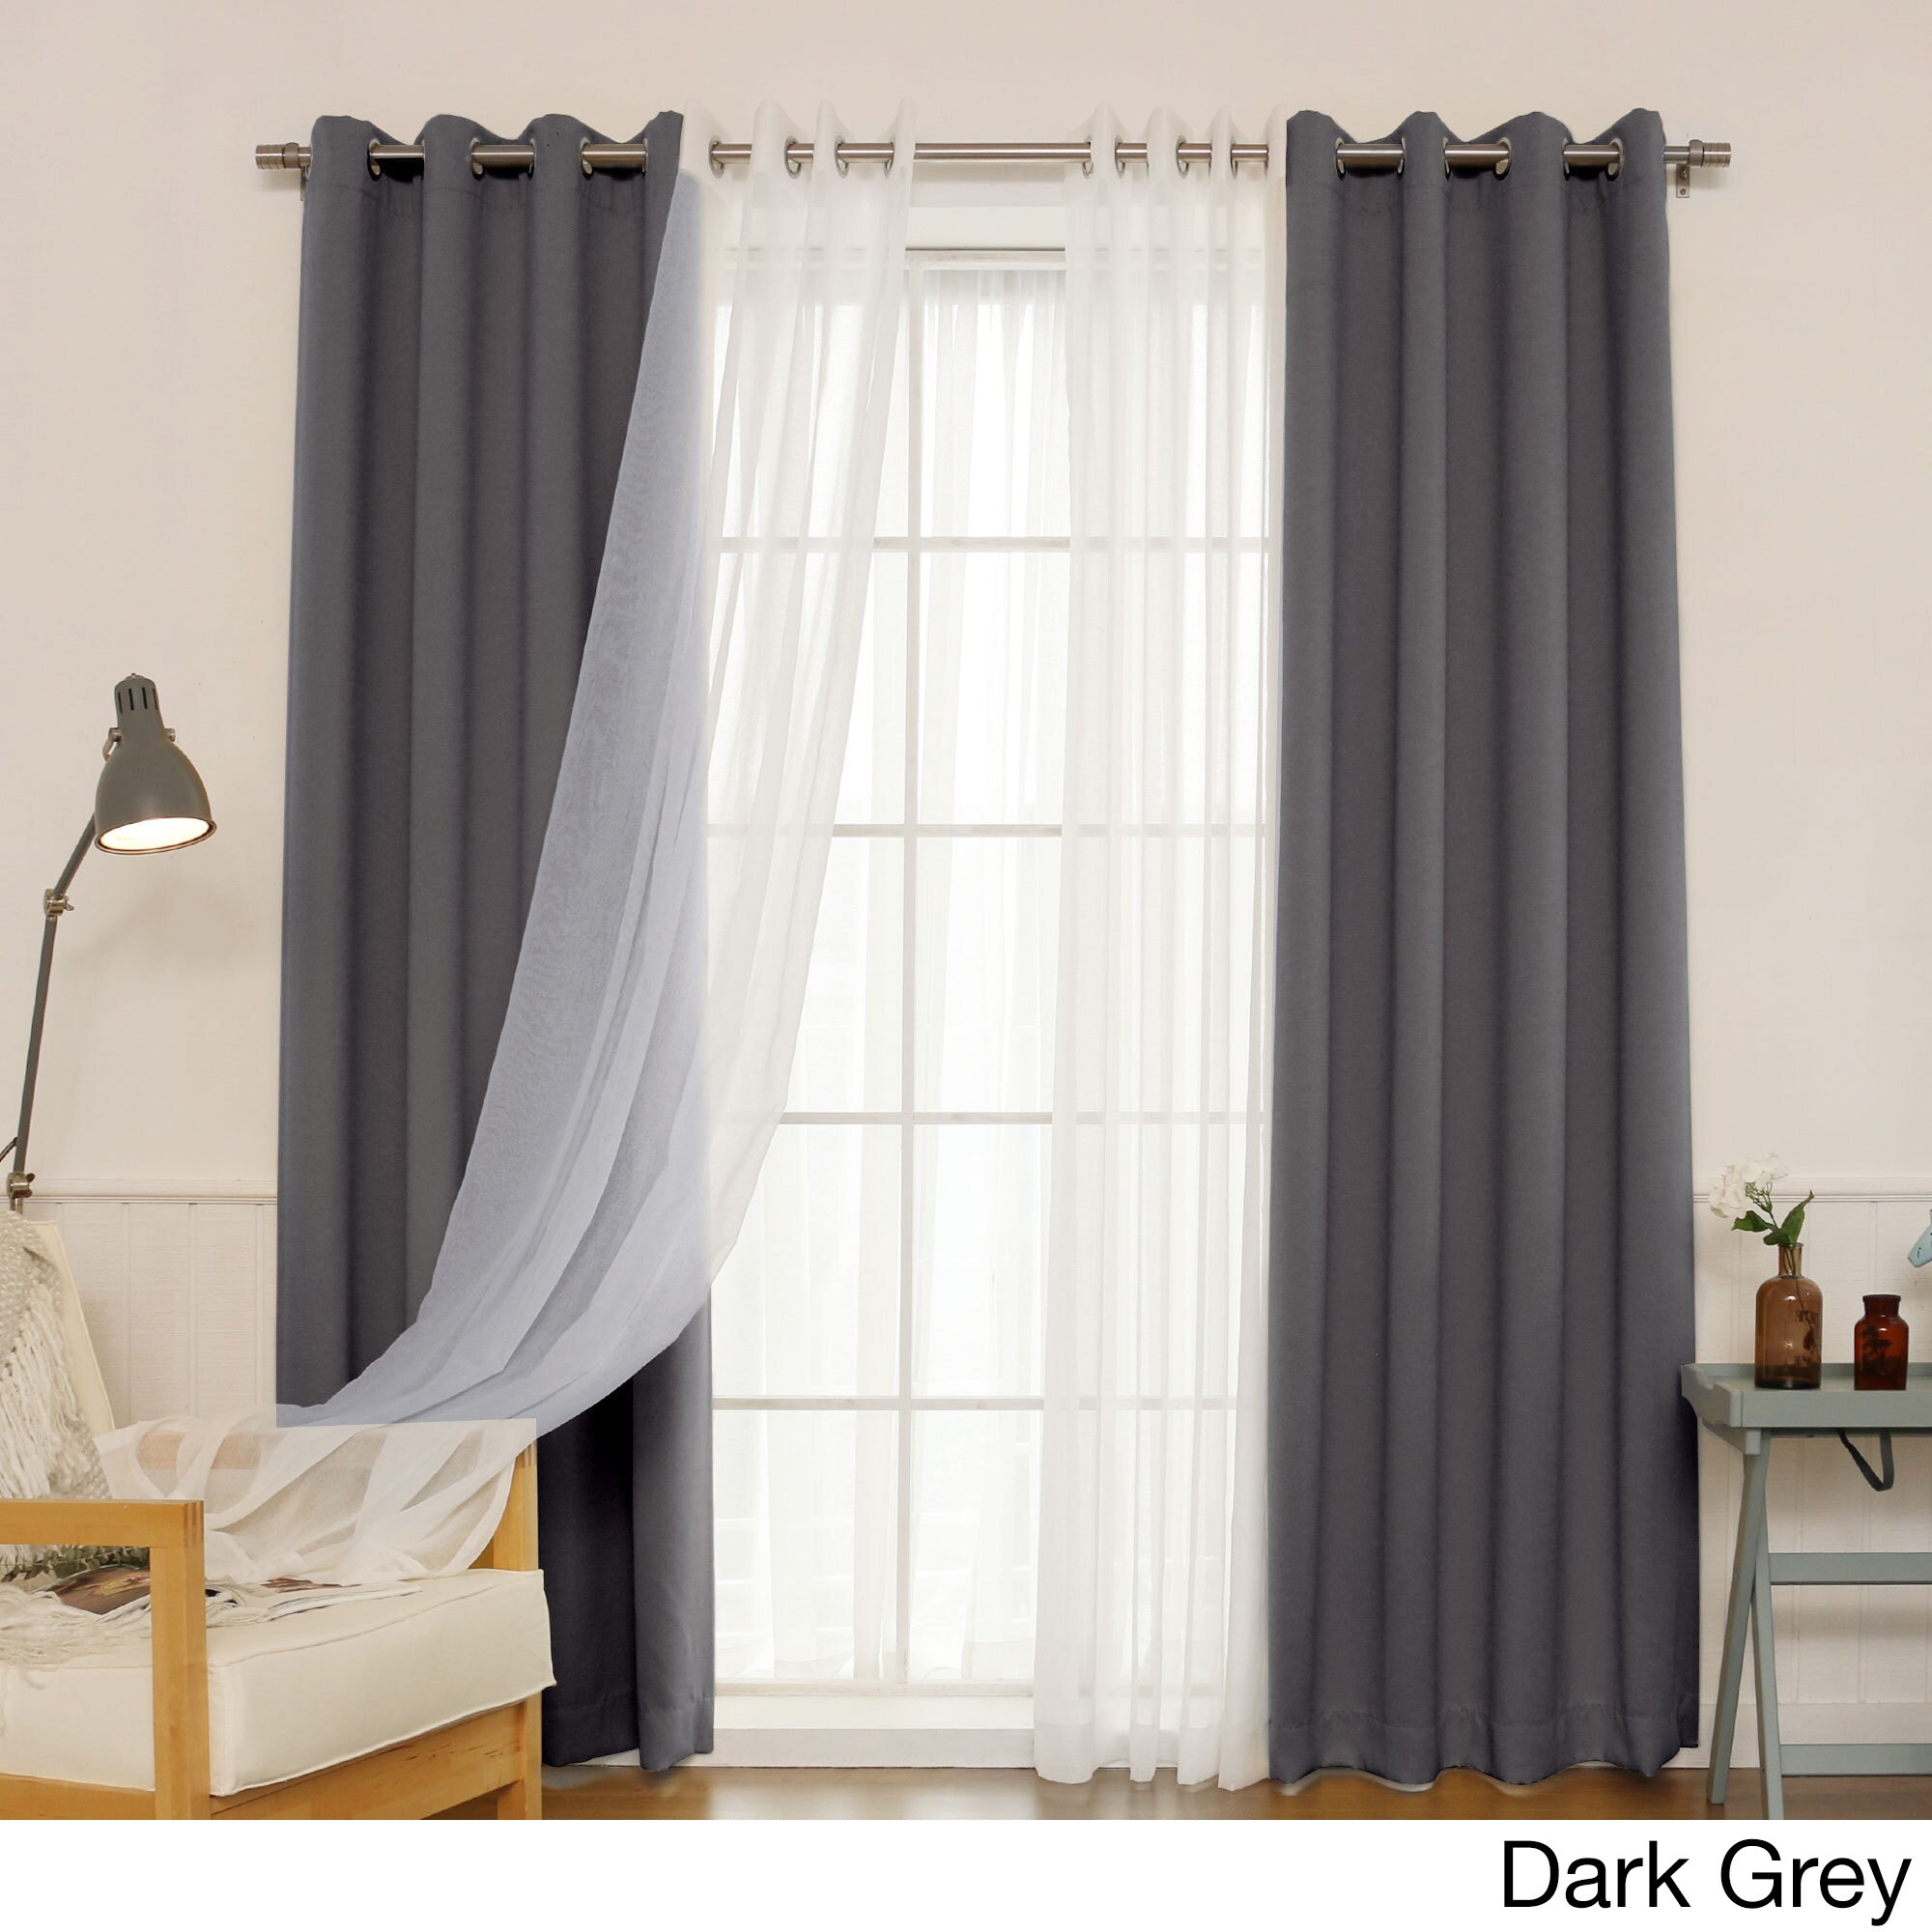 Aurora home mix amp match curtains blackout and muji sheer 84 inch silver grommet ebay